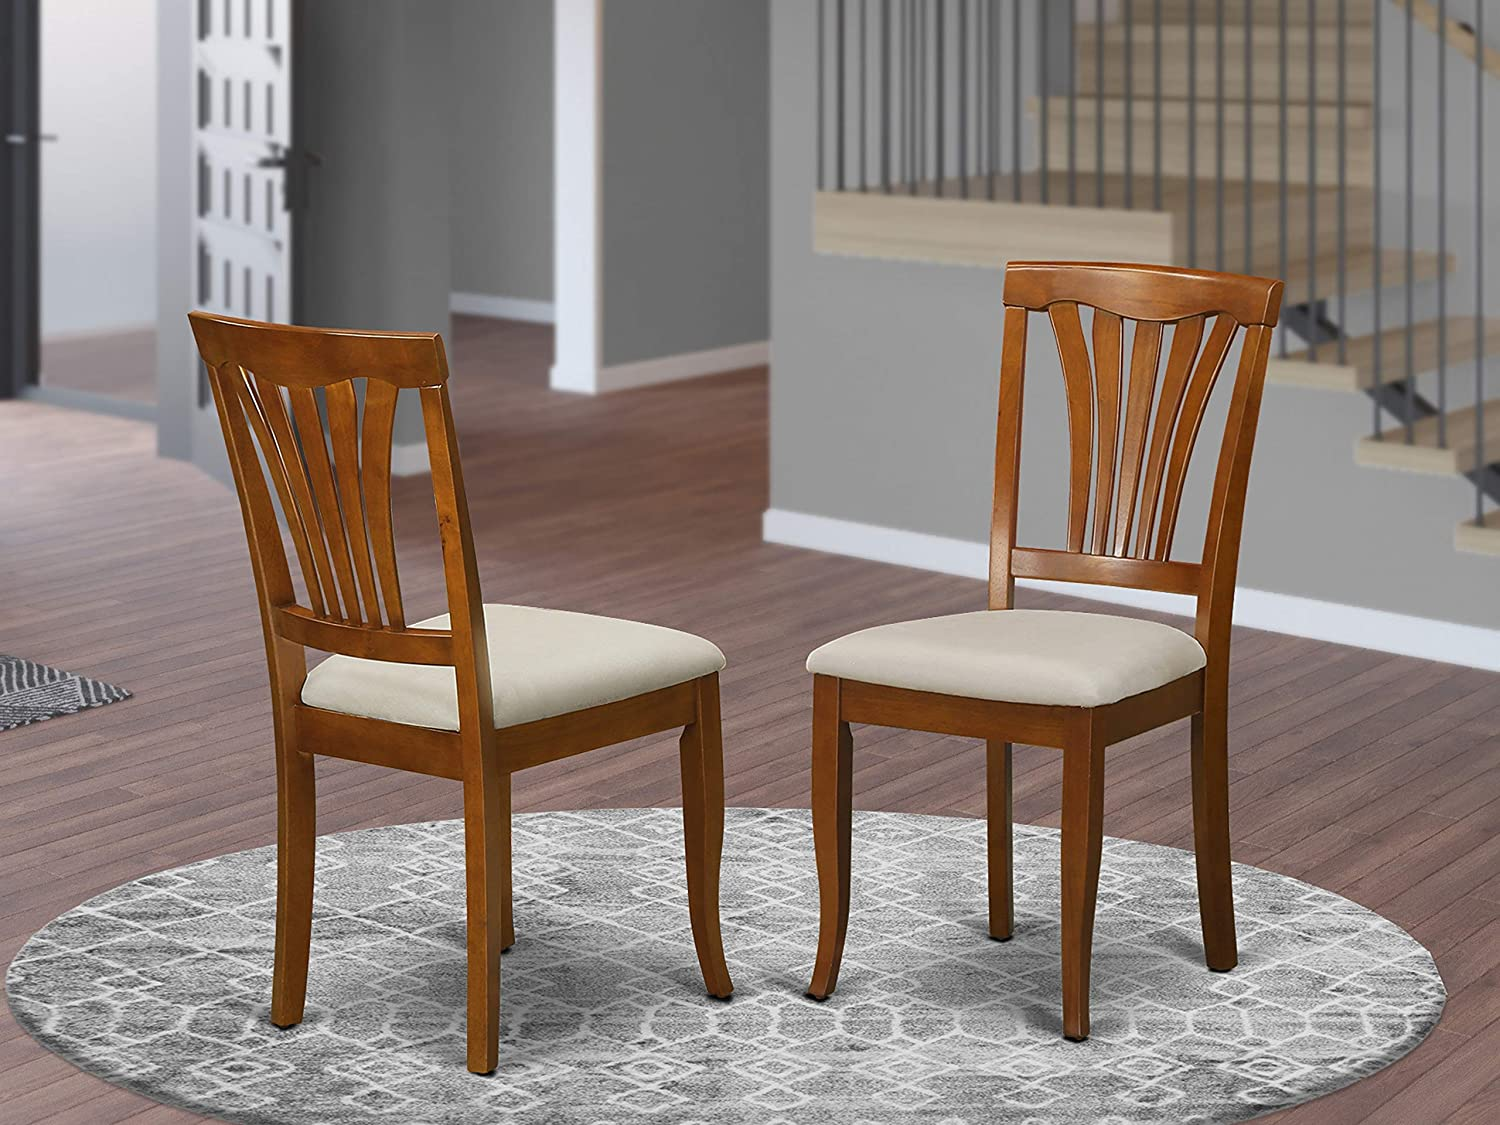 Avon Chair for dining room with Microfiber Upholstered Seat – Saddle Brow Finish